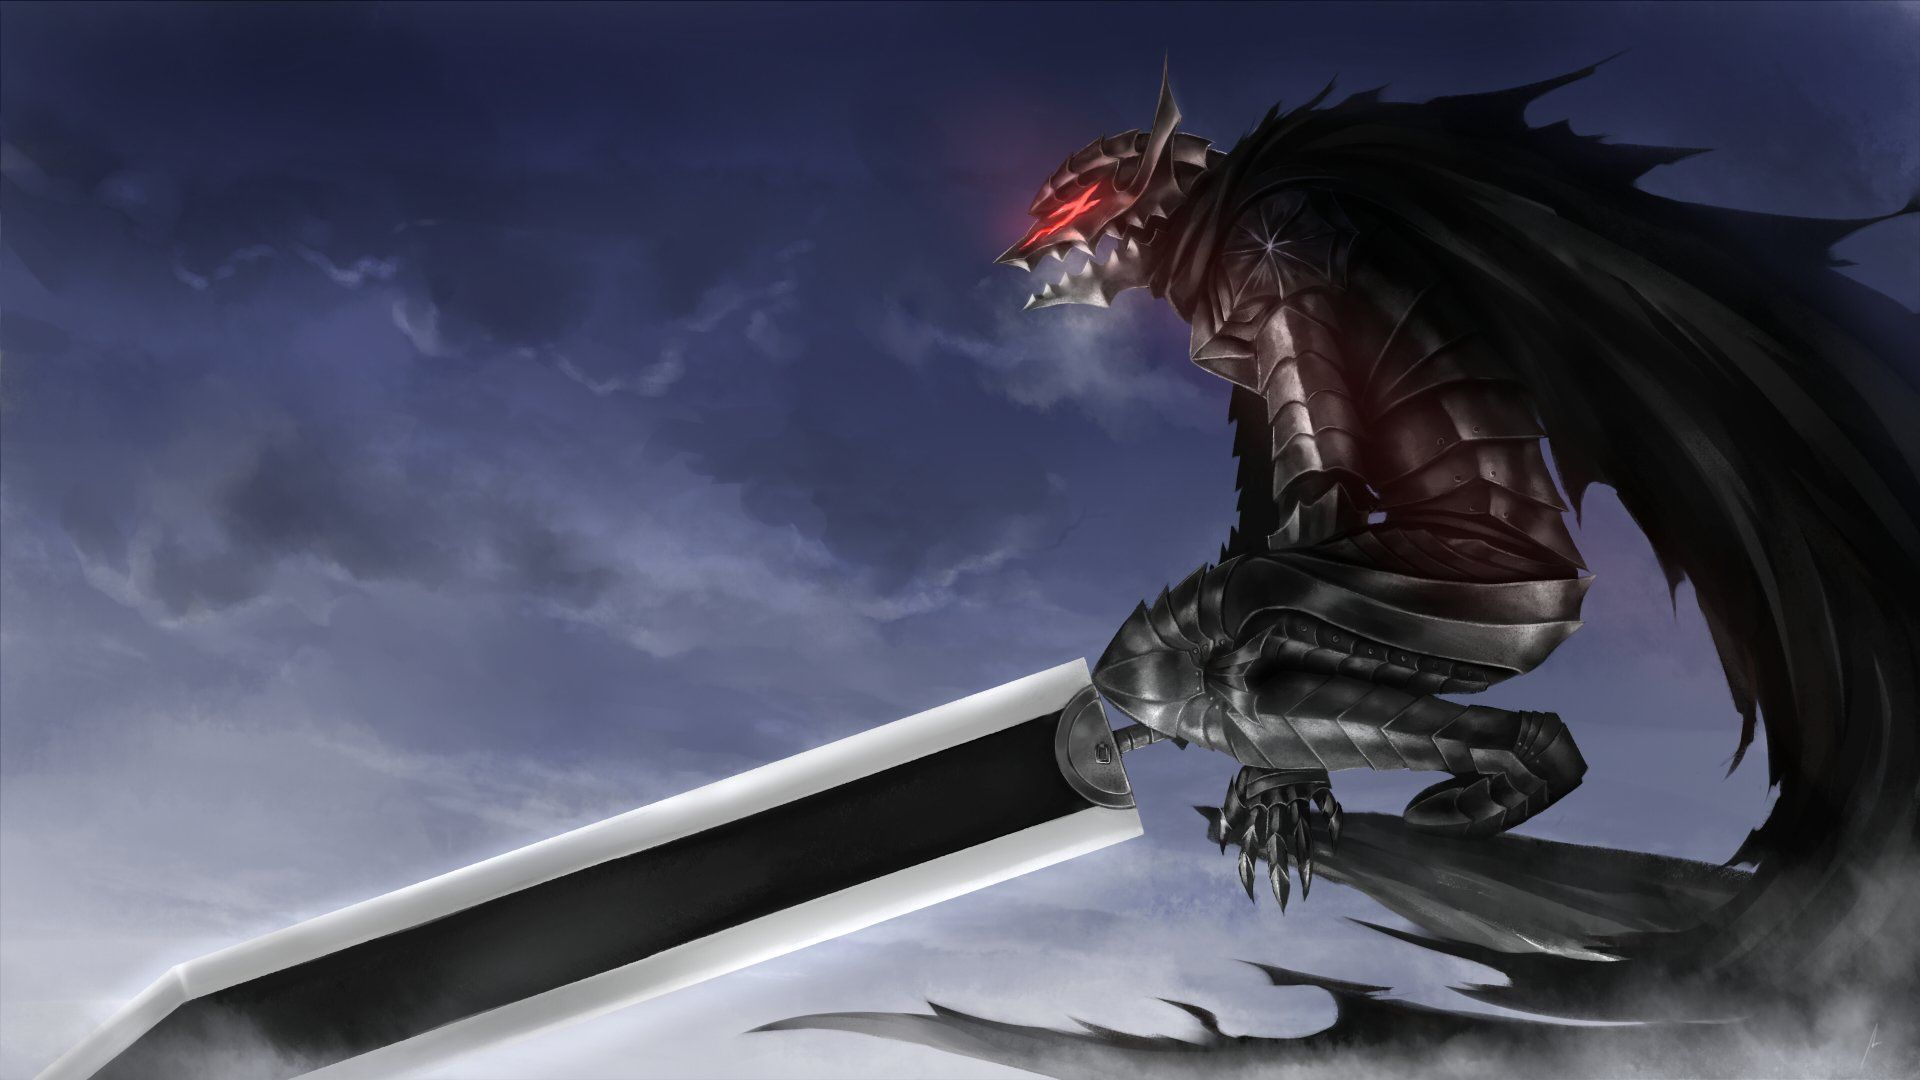 Anime Berserk Guts Berserk Wallpaper Berserk Anime Anime Wallpaper